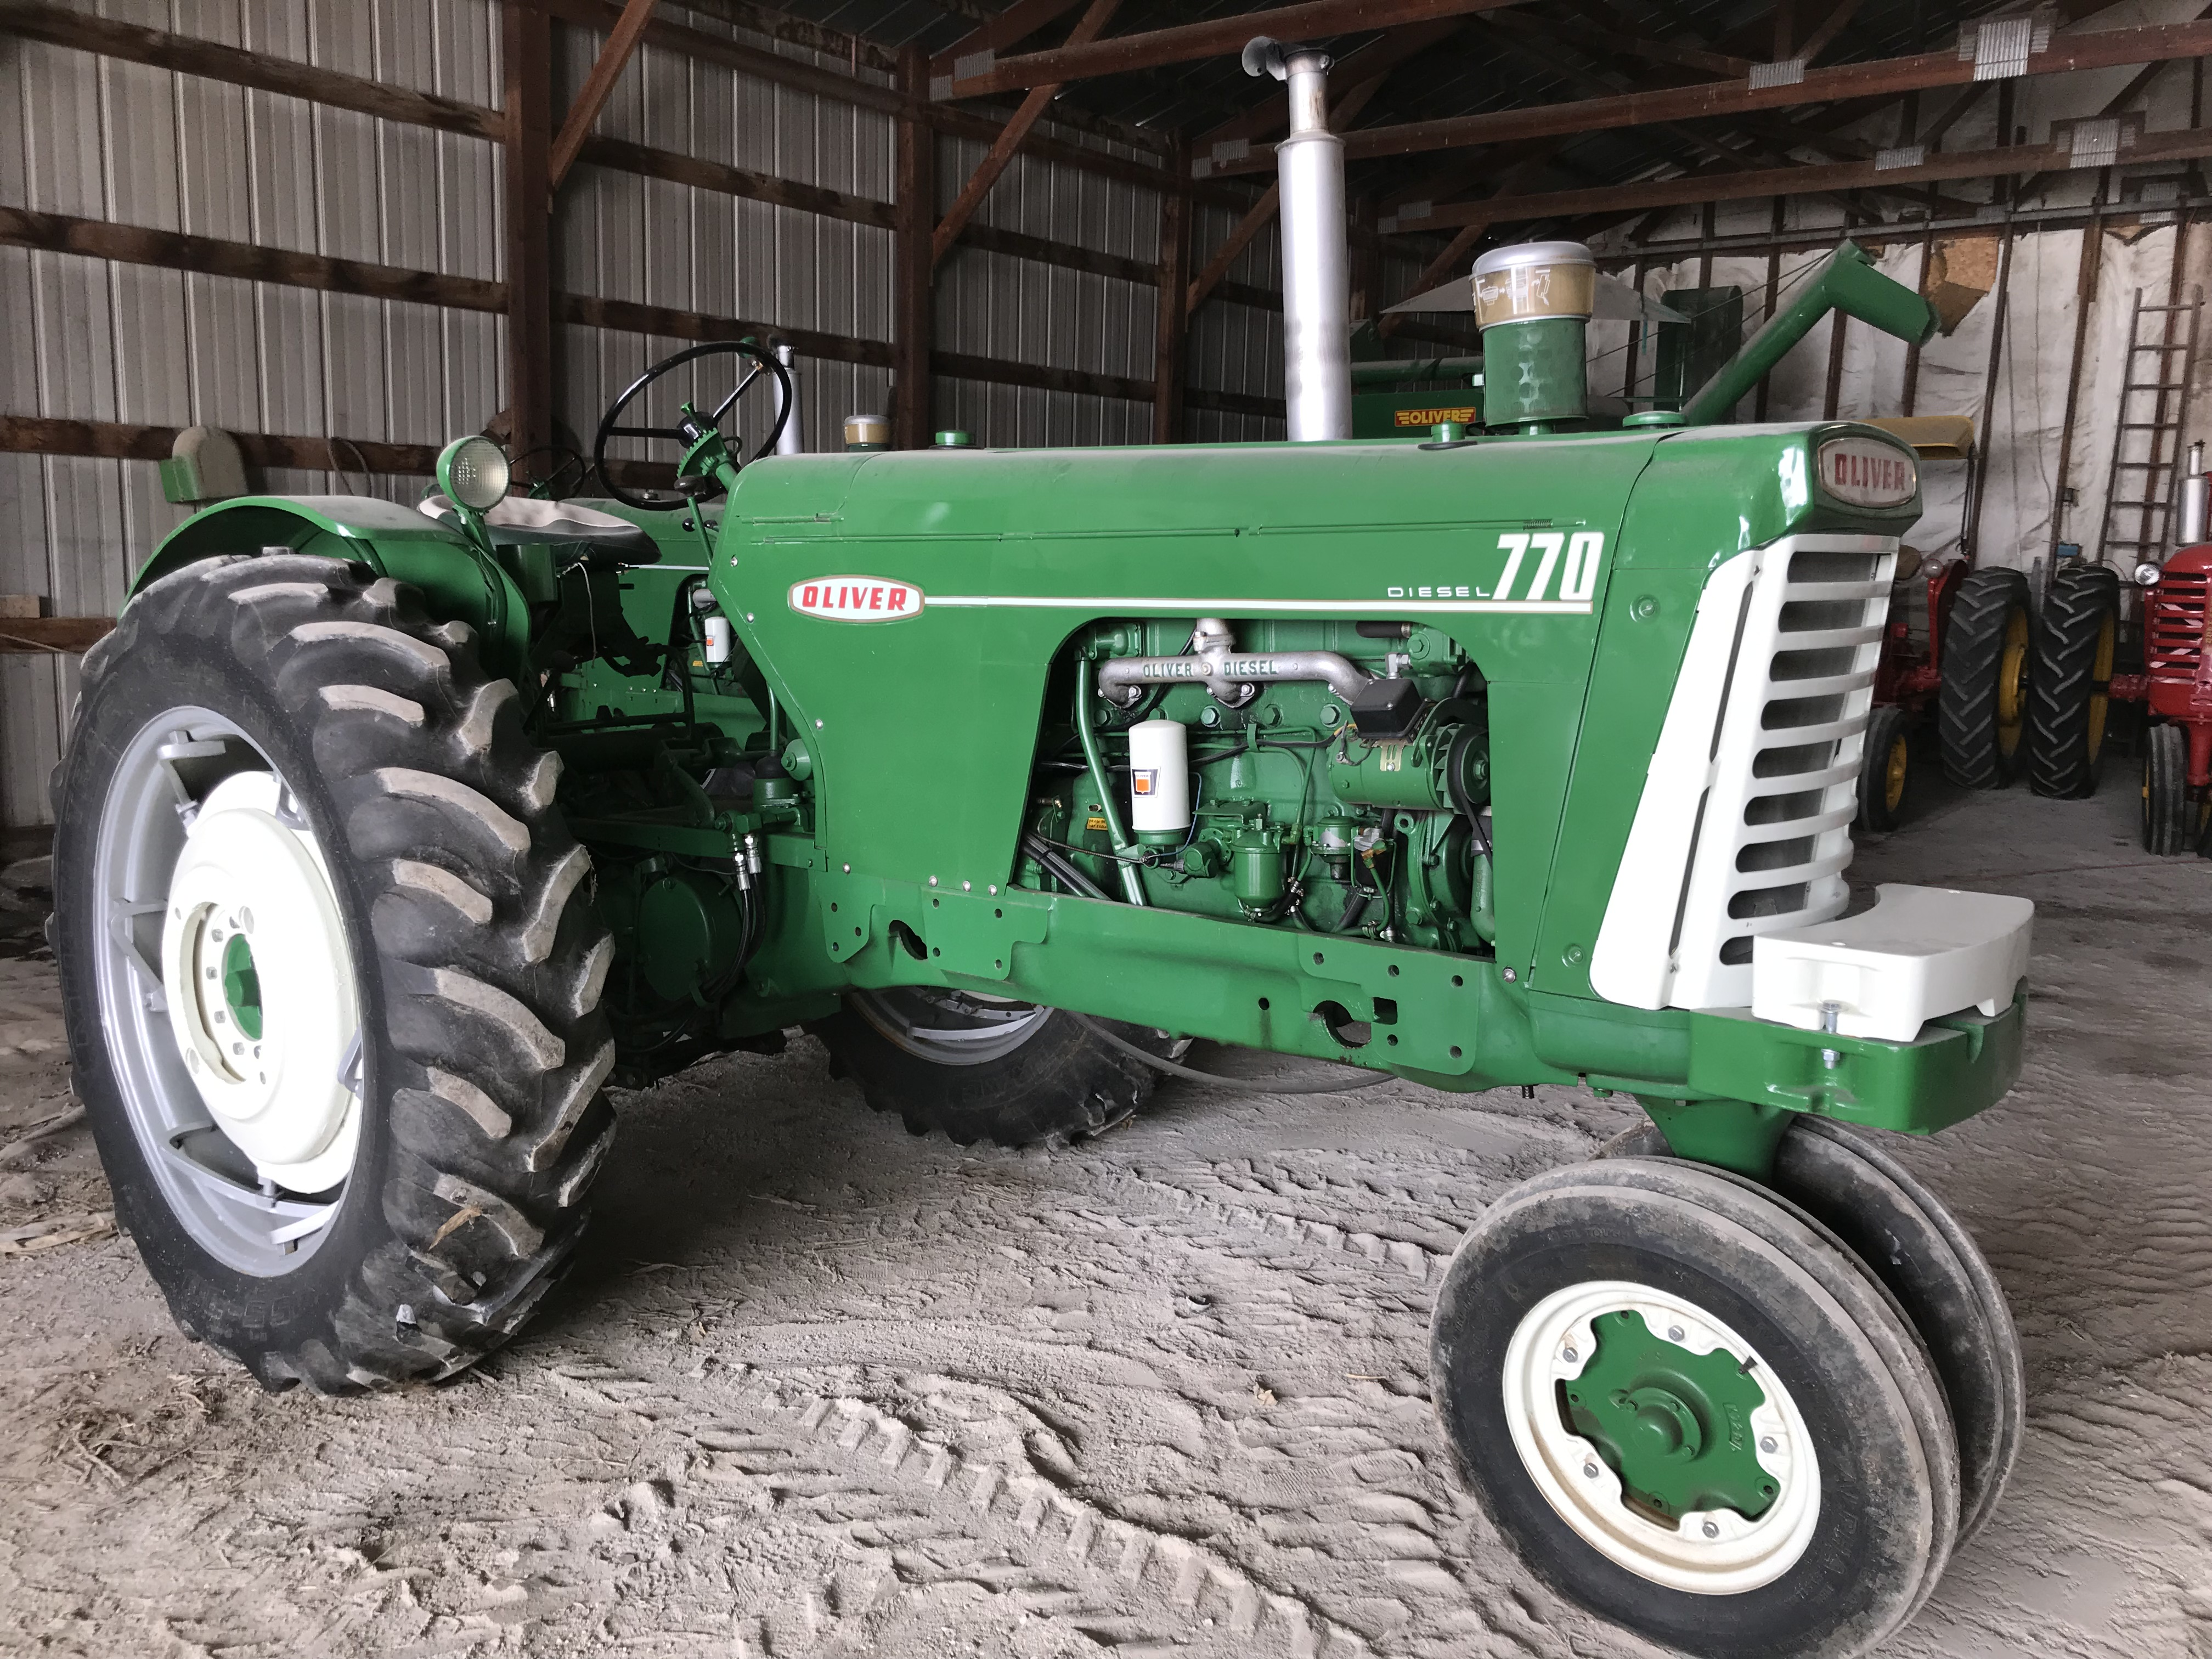 Lot 17 - Mdl.770 Diesel S#62384-721 NF, Dual Hyd, 15.5x38 New Rubber (restored)